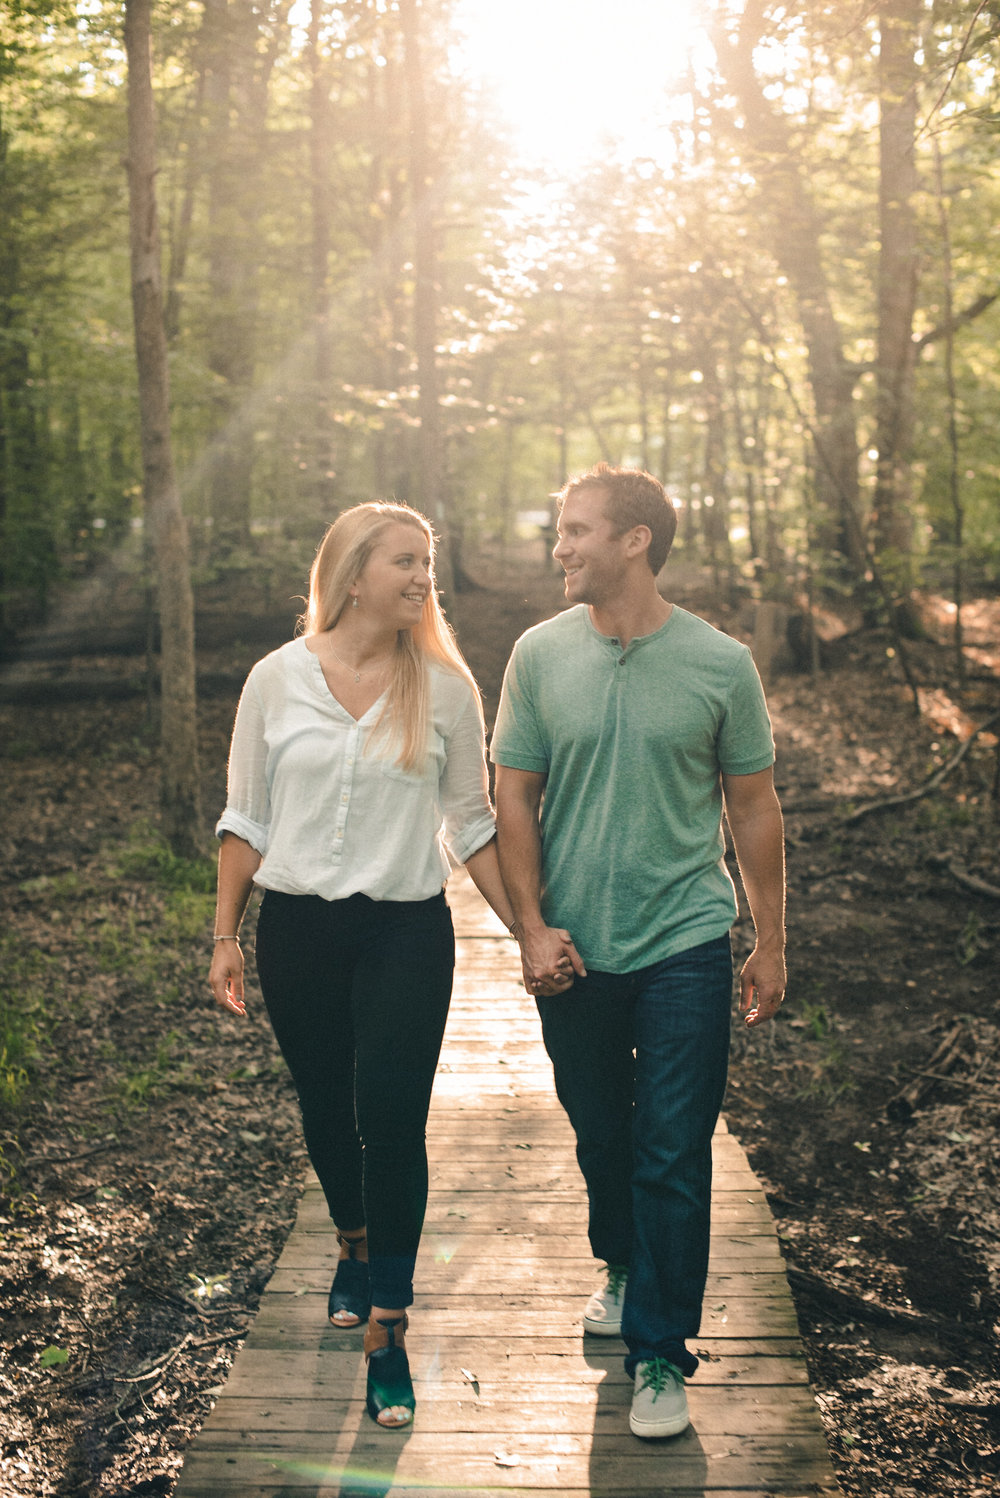 Man and woman walking through forest